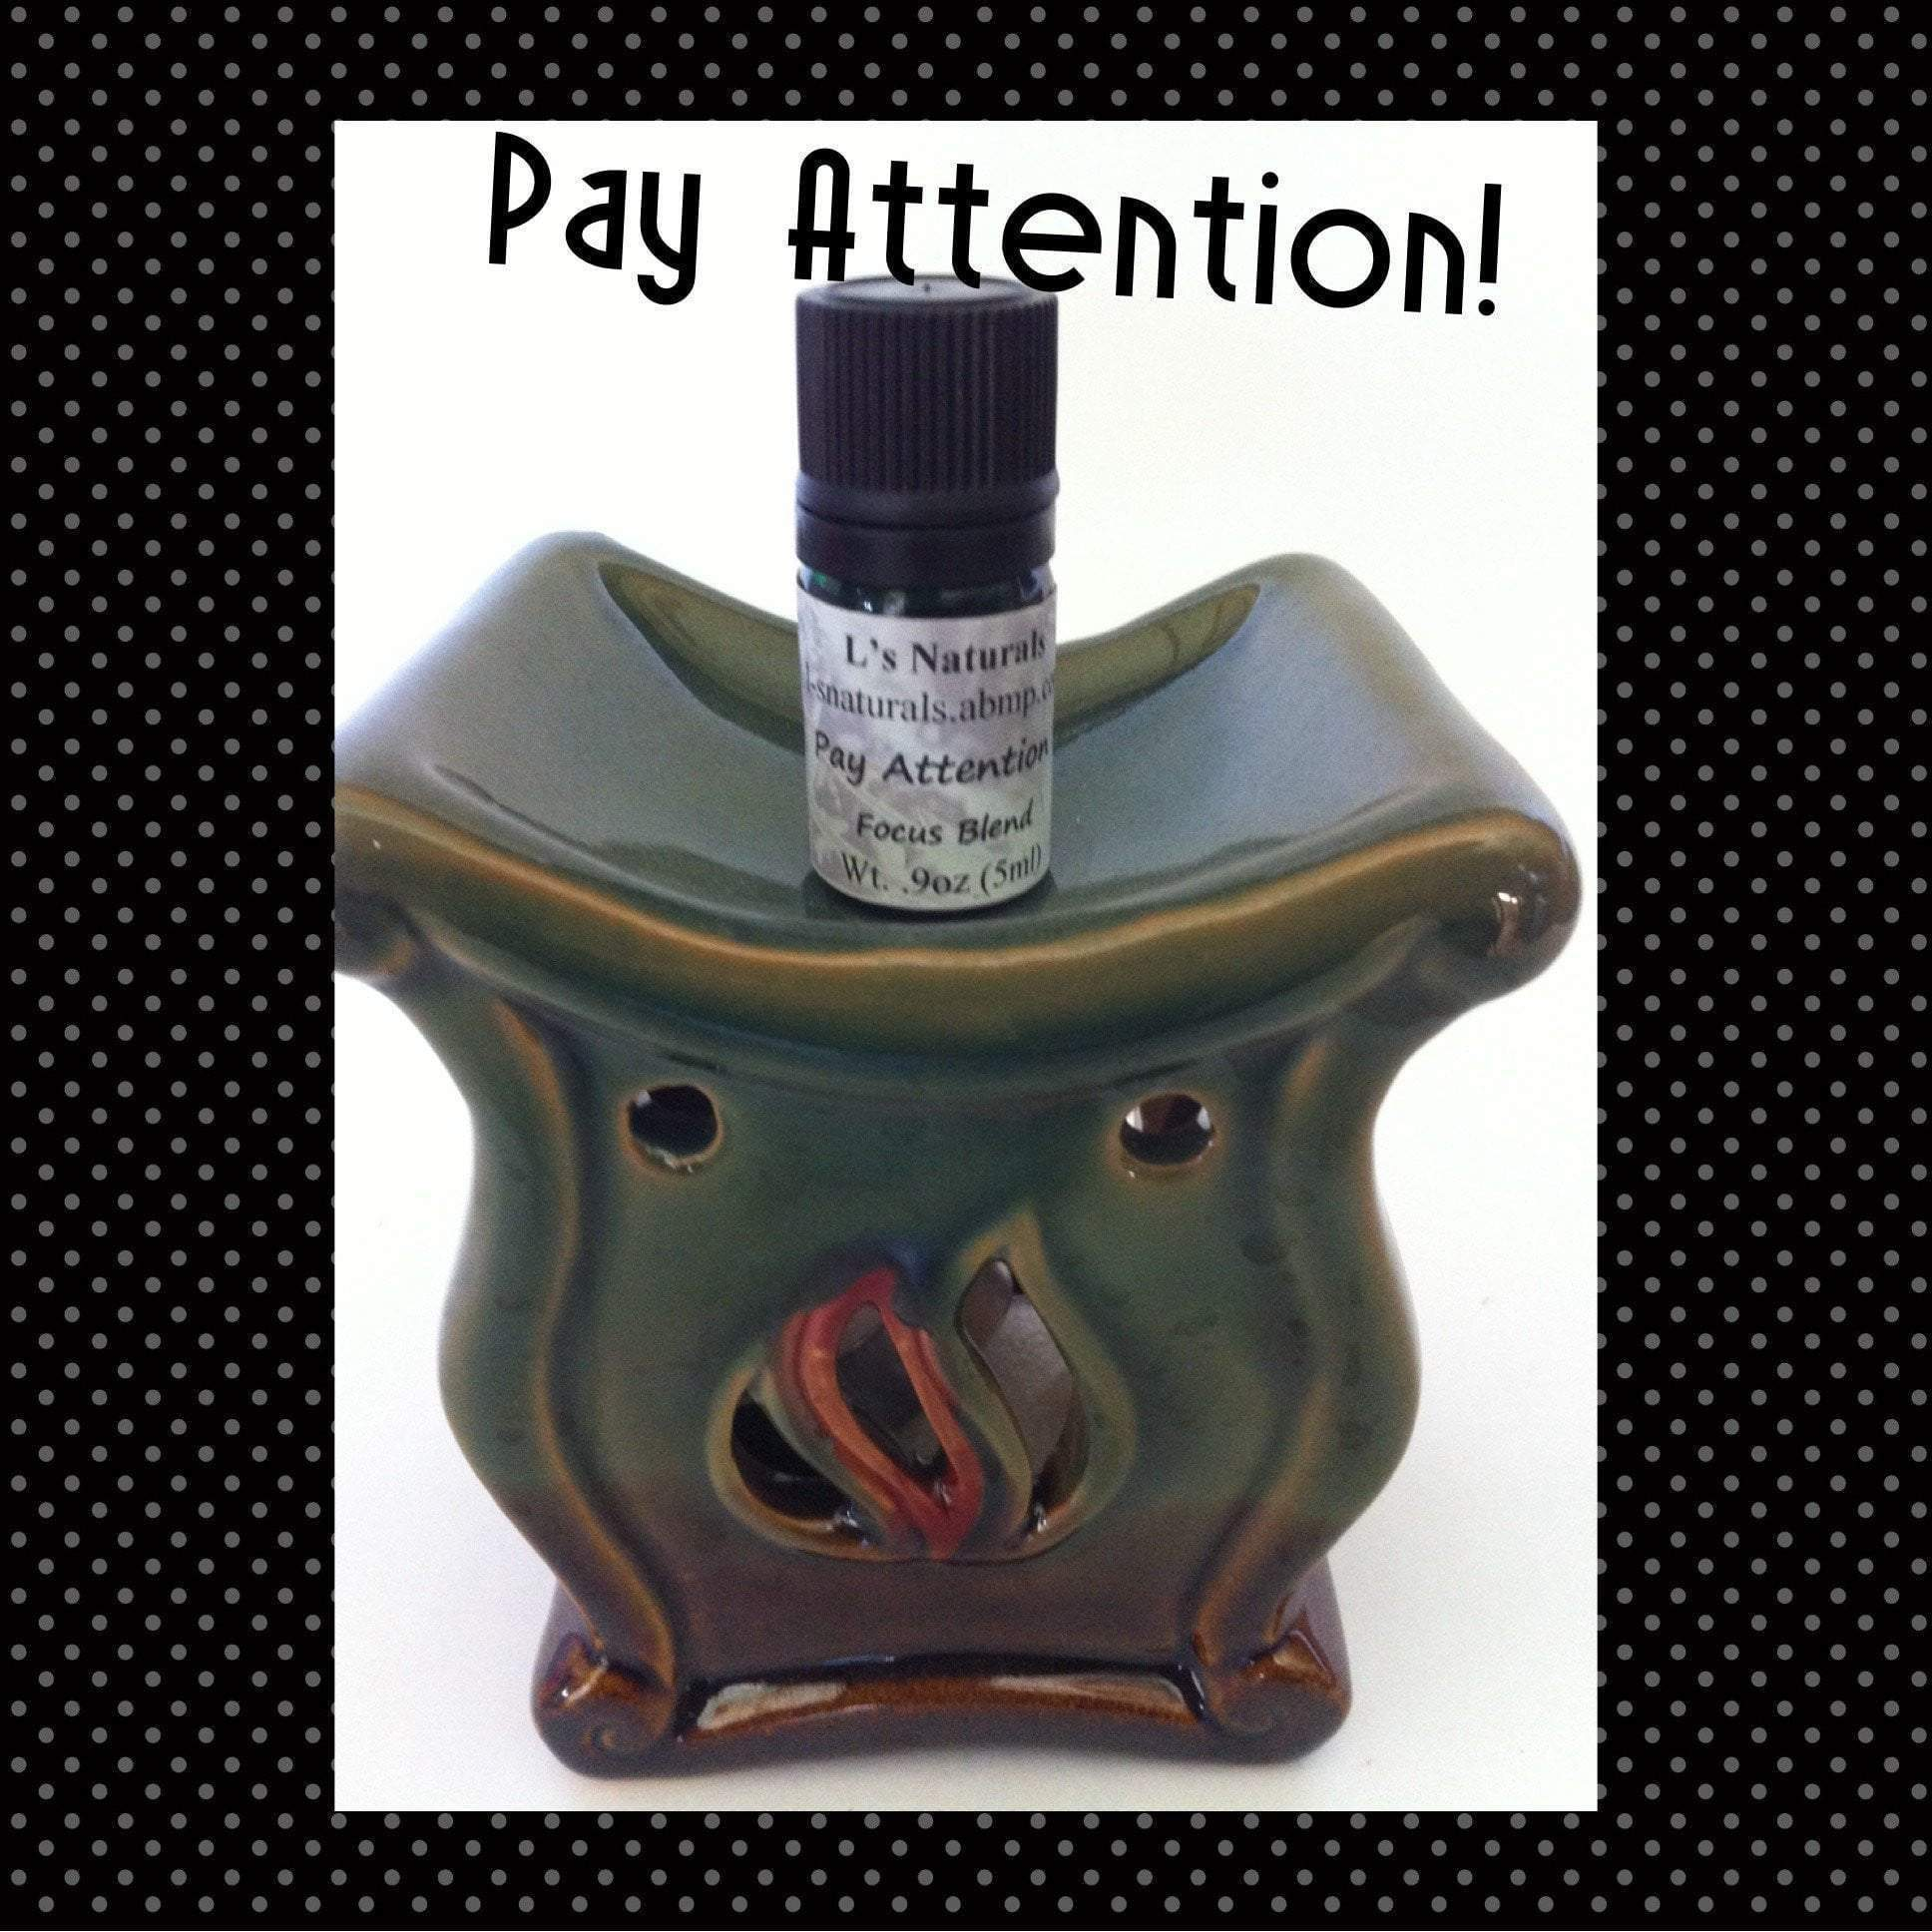 Pay Attention! (Aromatherapy Focus Blend) (5ml,10ml) - L's Naturals-  Bath, Body & Home Products